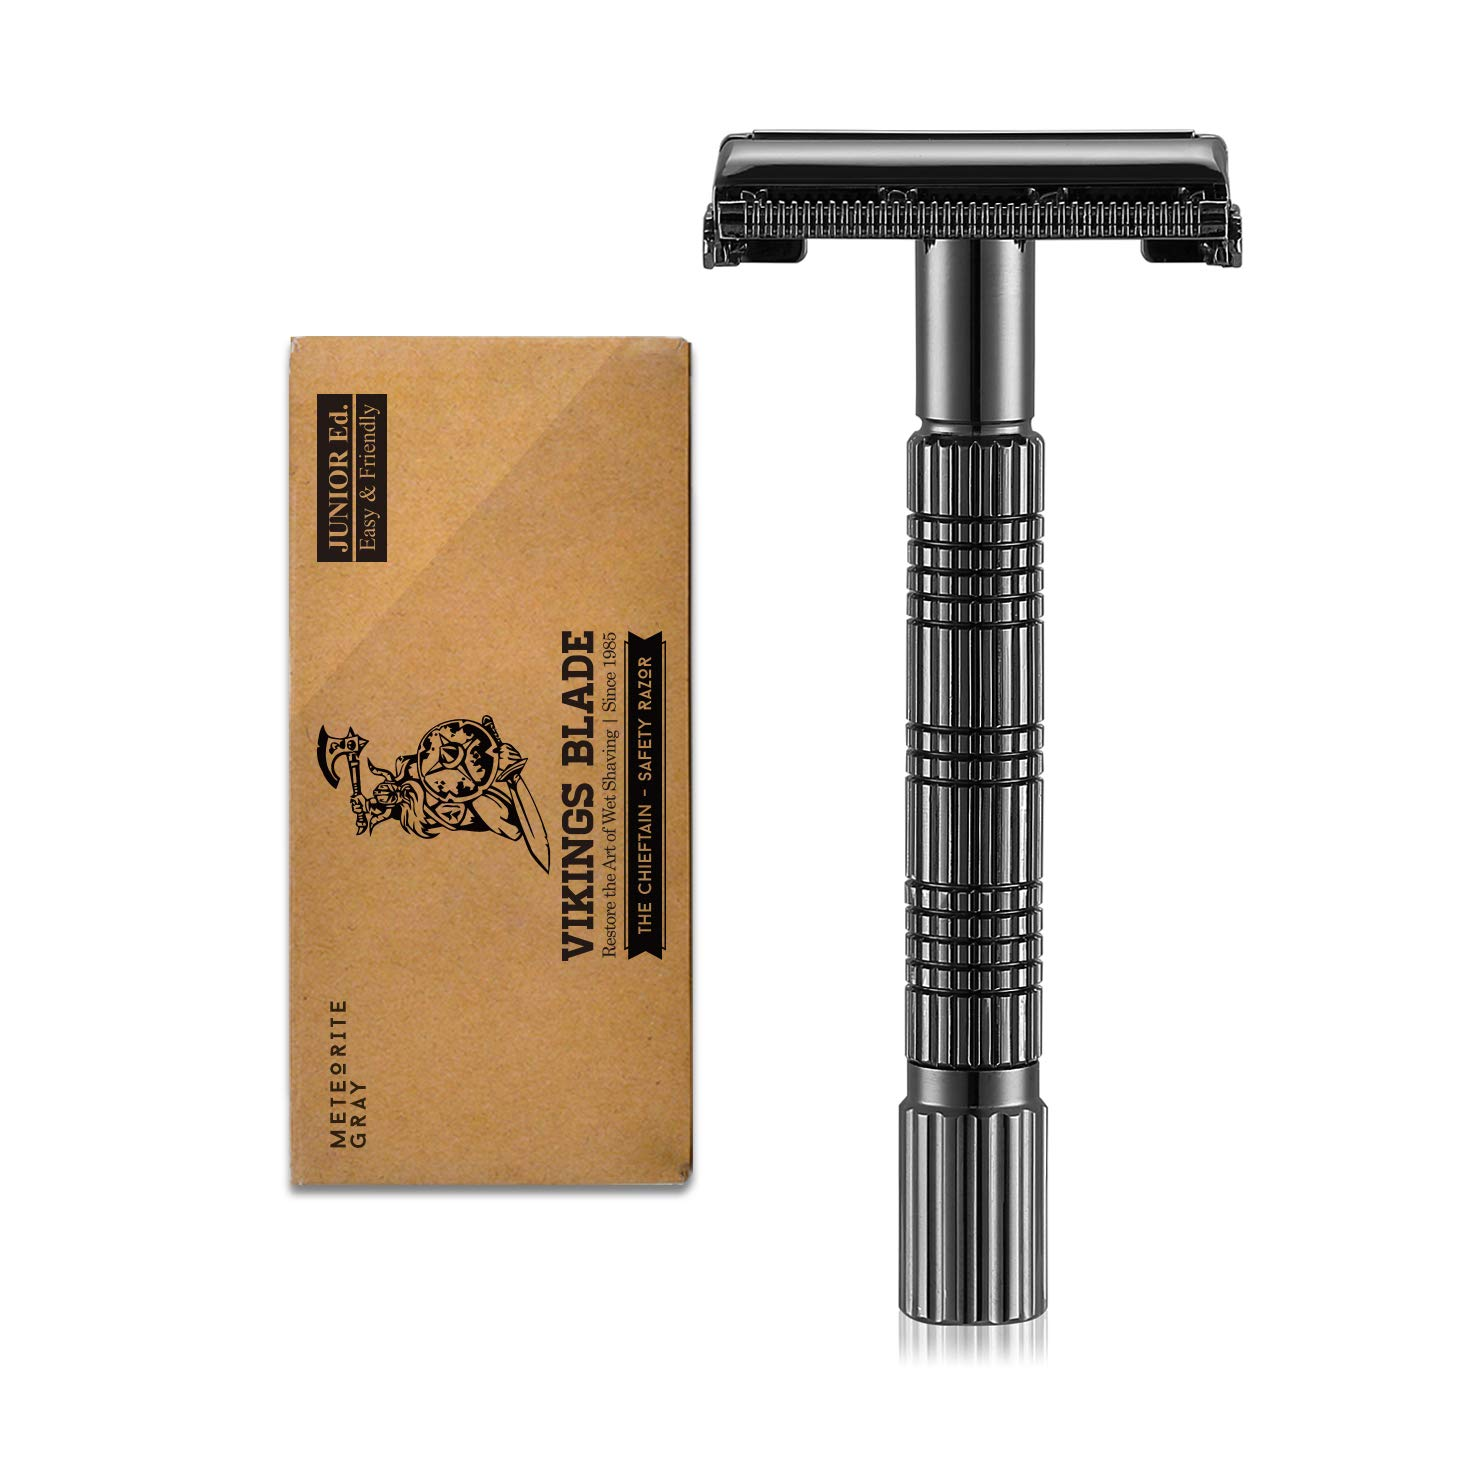 VIKINGS BLADE The Chieftain JR Double Edge Safety Razor, Meteorite Gray (Slim & Mild)